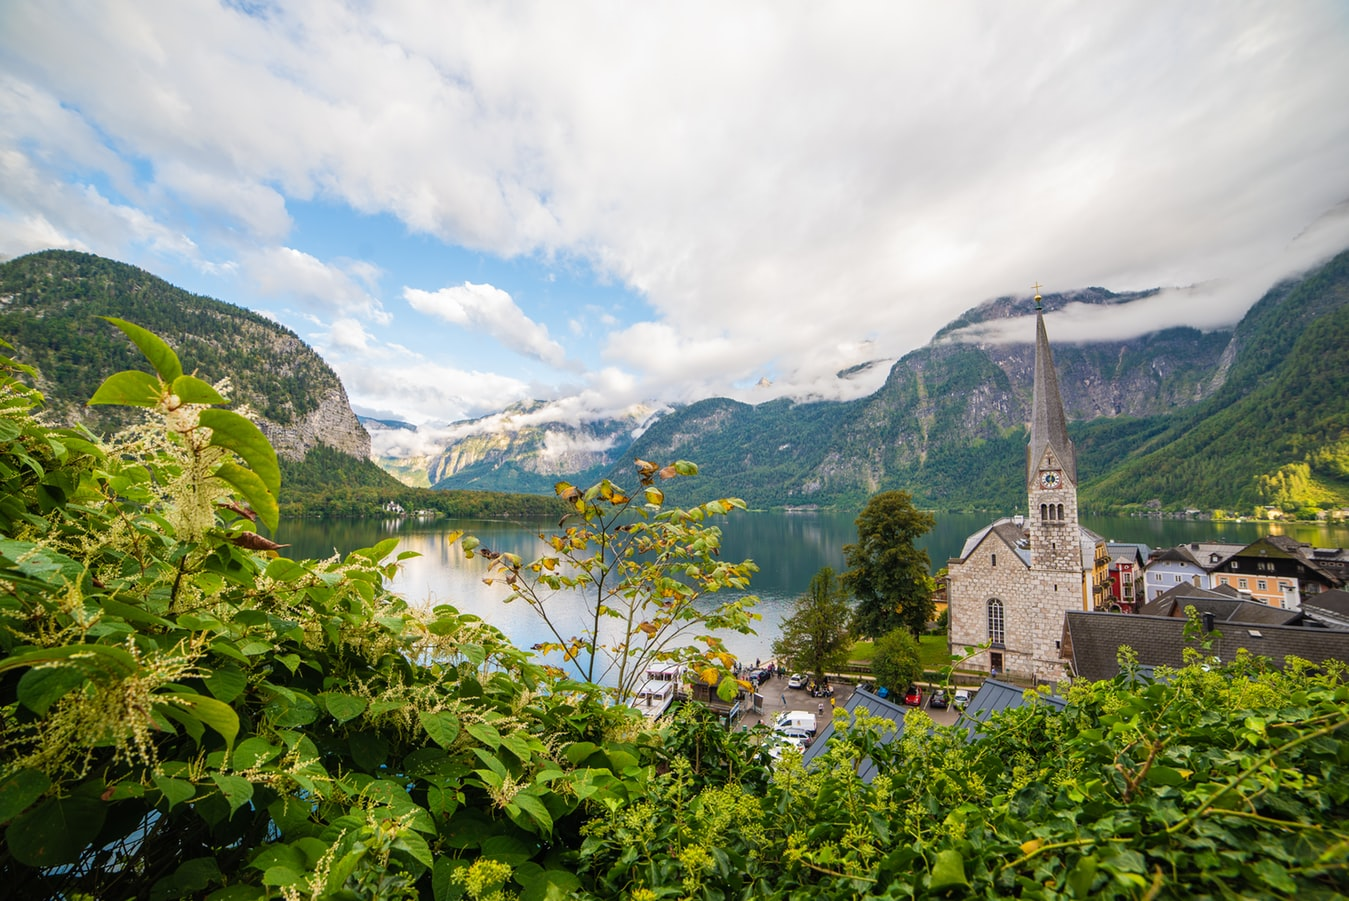 hallstatt village in austria, church next to the lake in between mountains, fairy tale villages